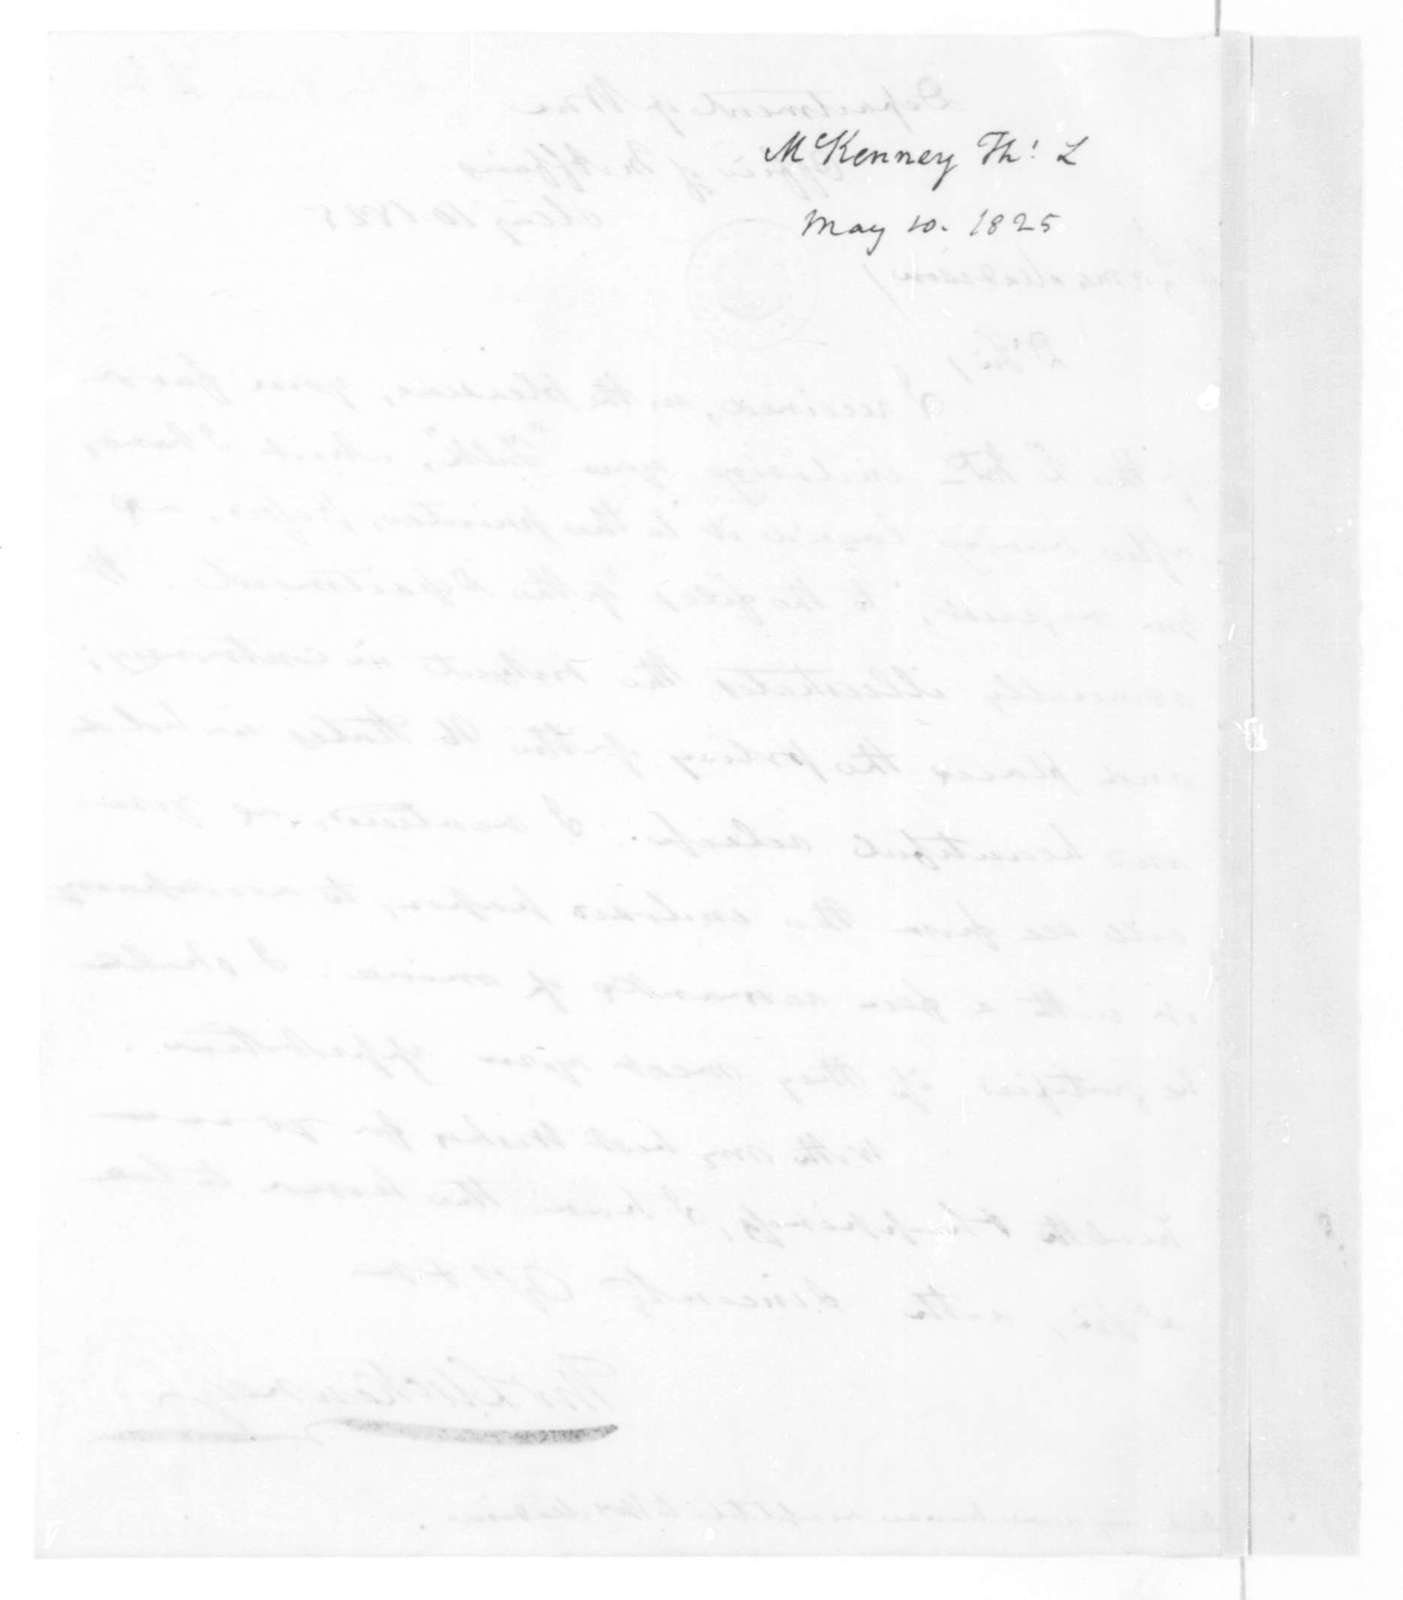 Thomas L. McKenney to James Madison, May 10, 1825.